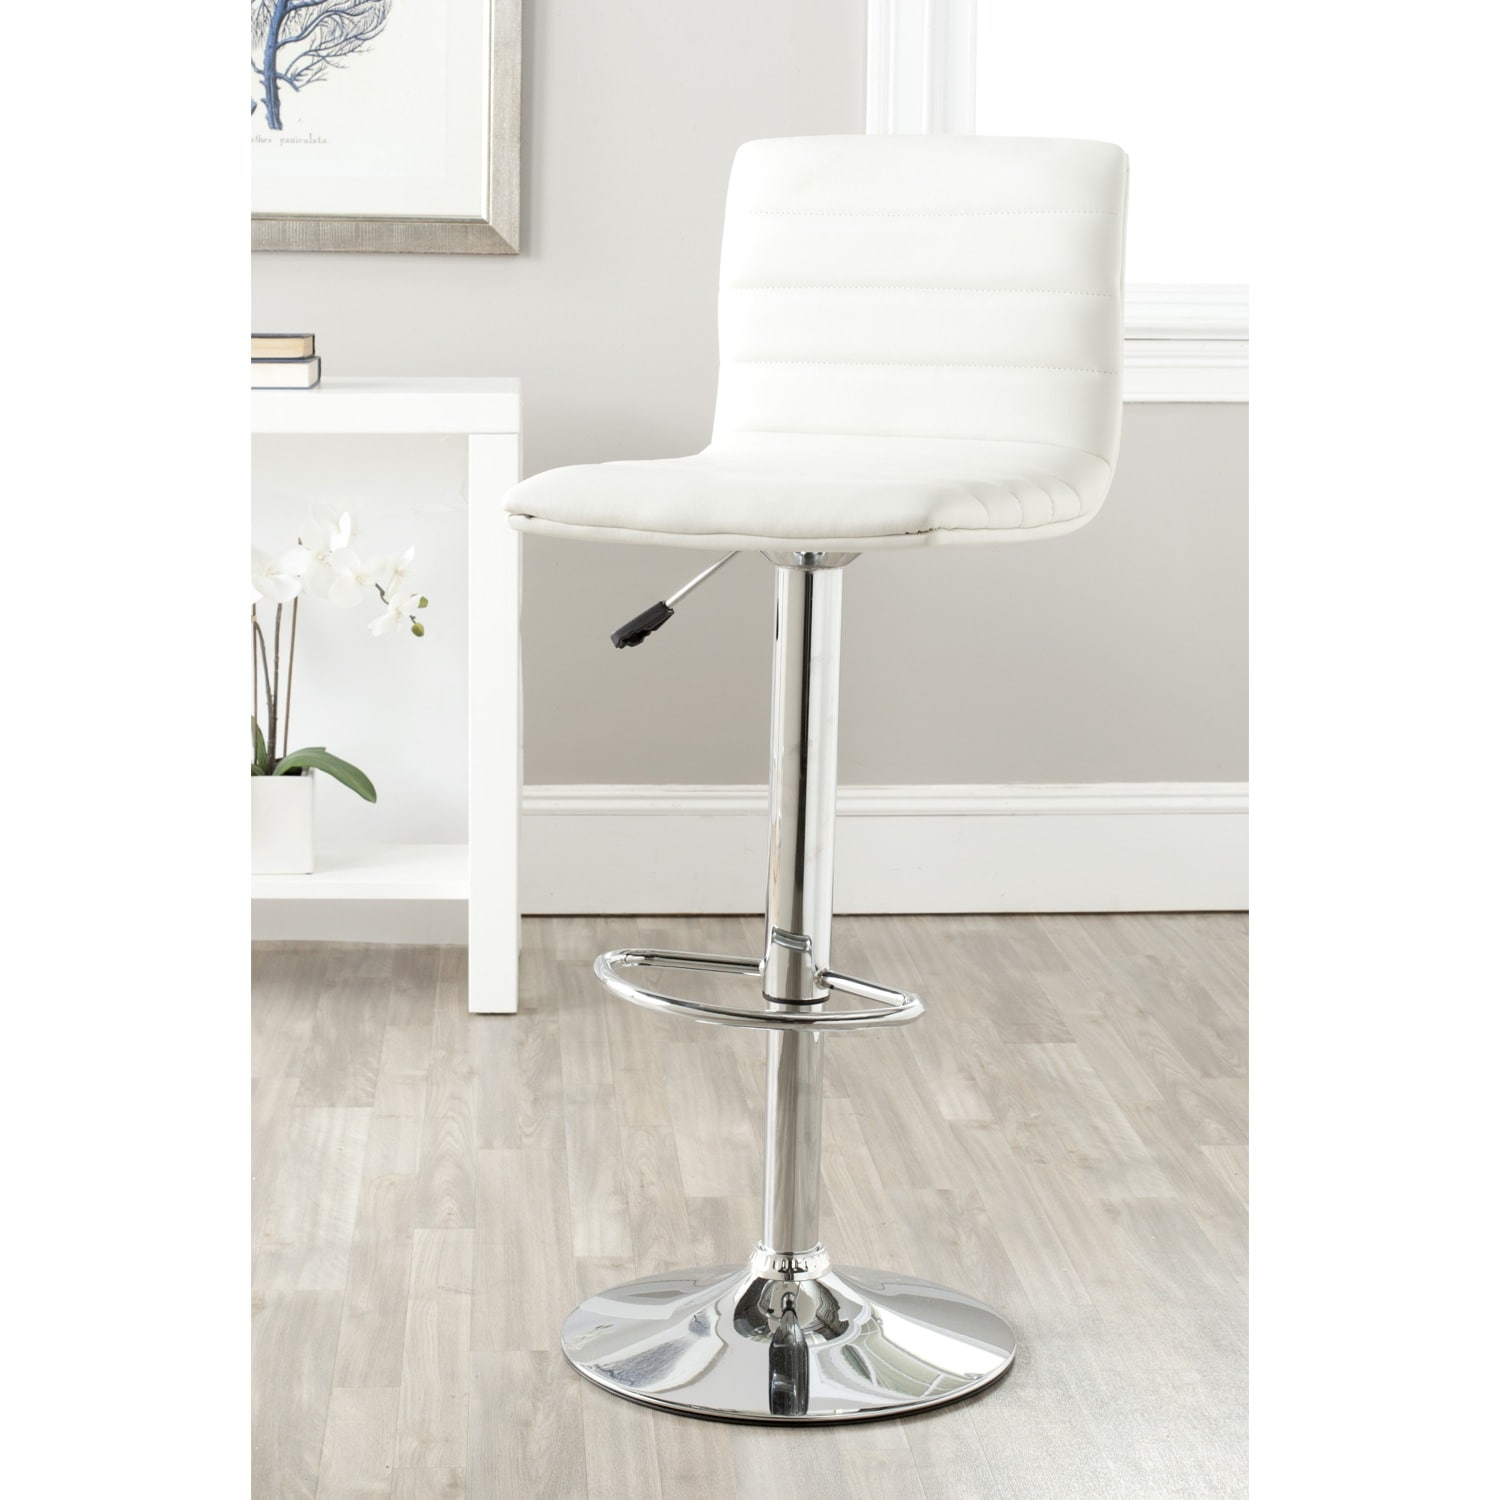 Pleasant Safavieh Arissa White Adjustable 24 30 Inch Swivel Bar Stool 15 4 X 18 5 X 34 7 Onthecornerstone Fun Painted Chair Ideas Images Onthecornerstoneorg